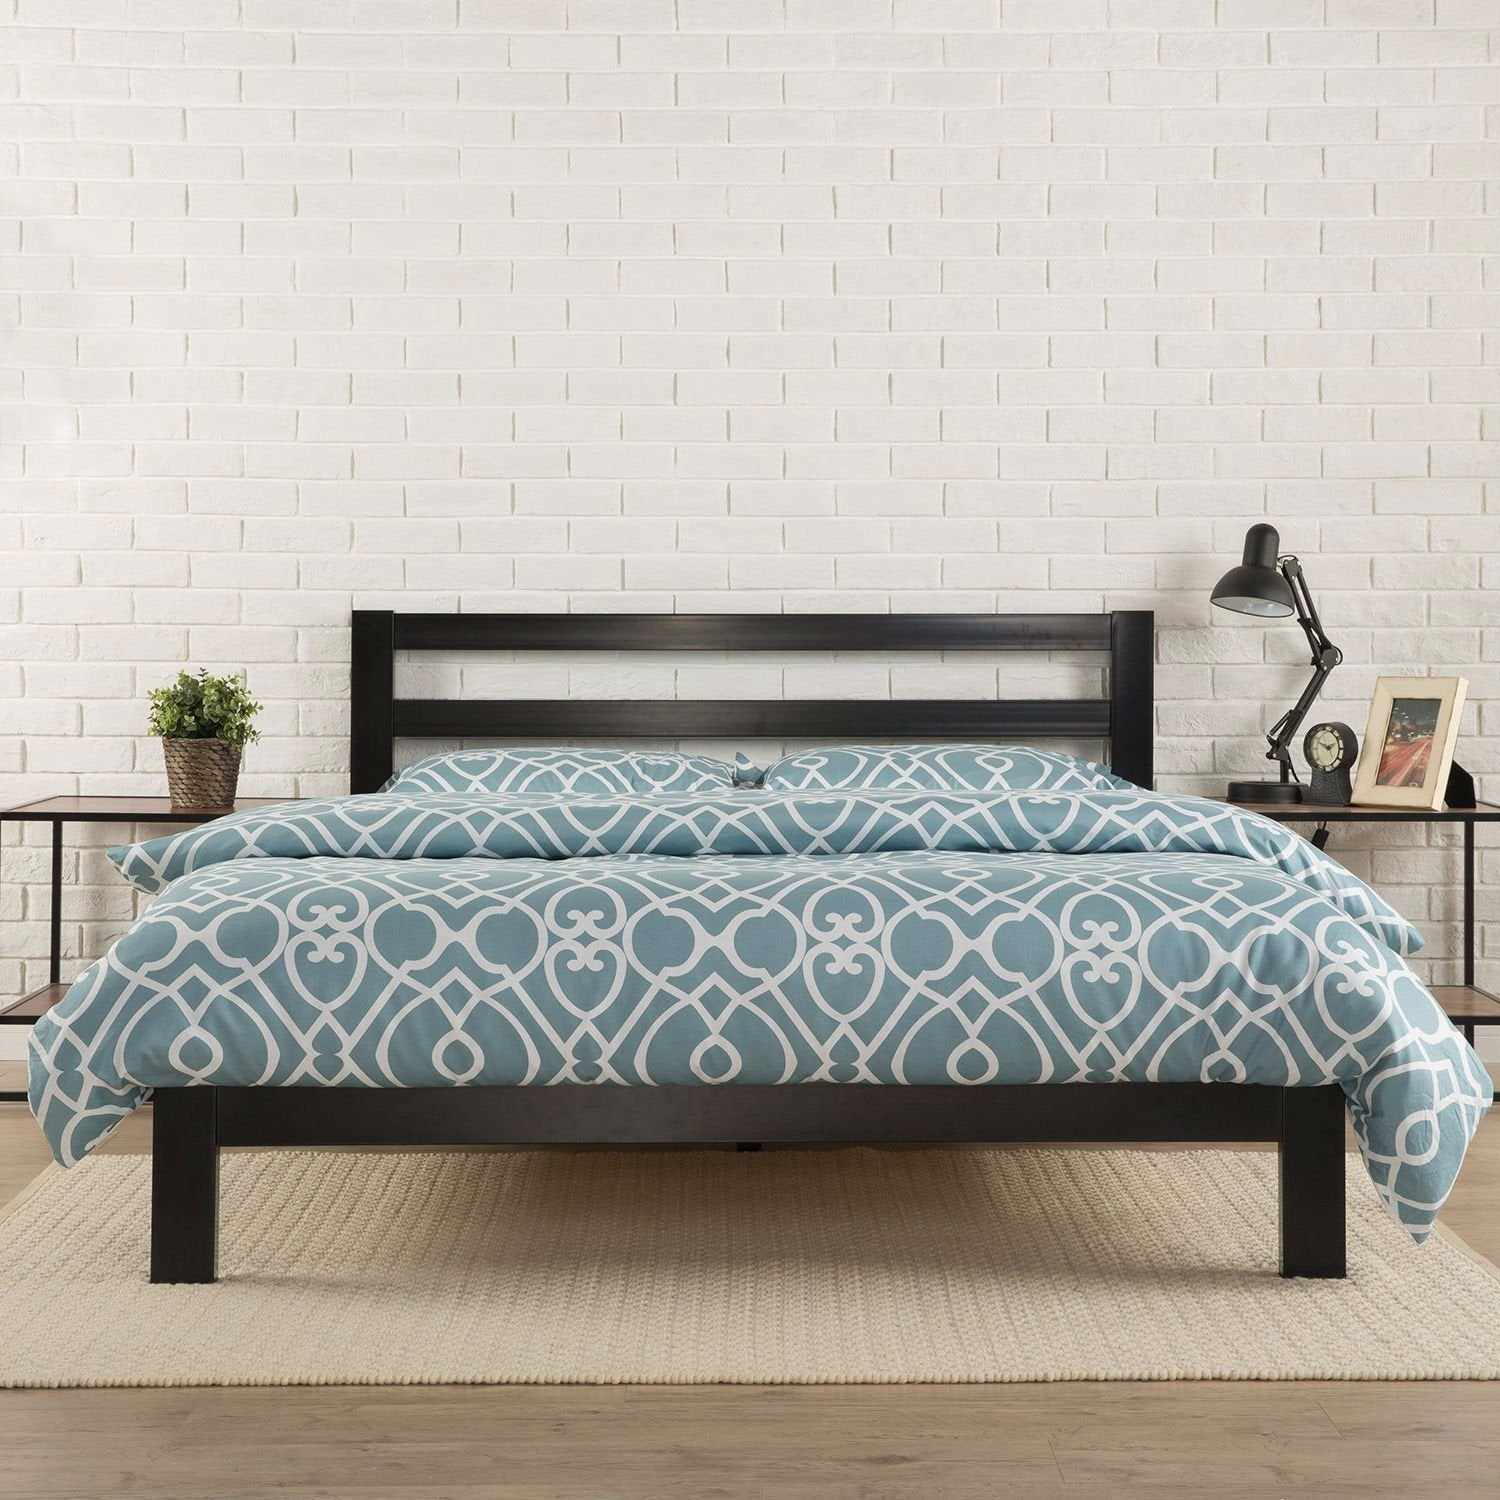 Queen Heavy Duty Metal Platform Bed Frame with Headboard and Wood Slats.